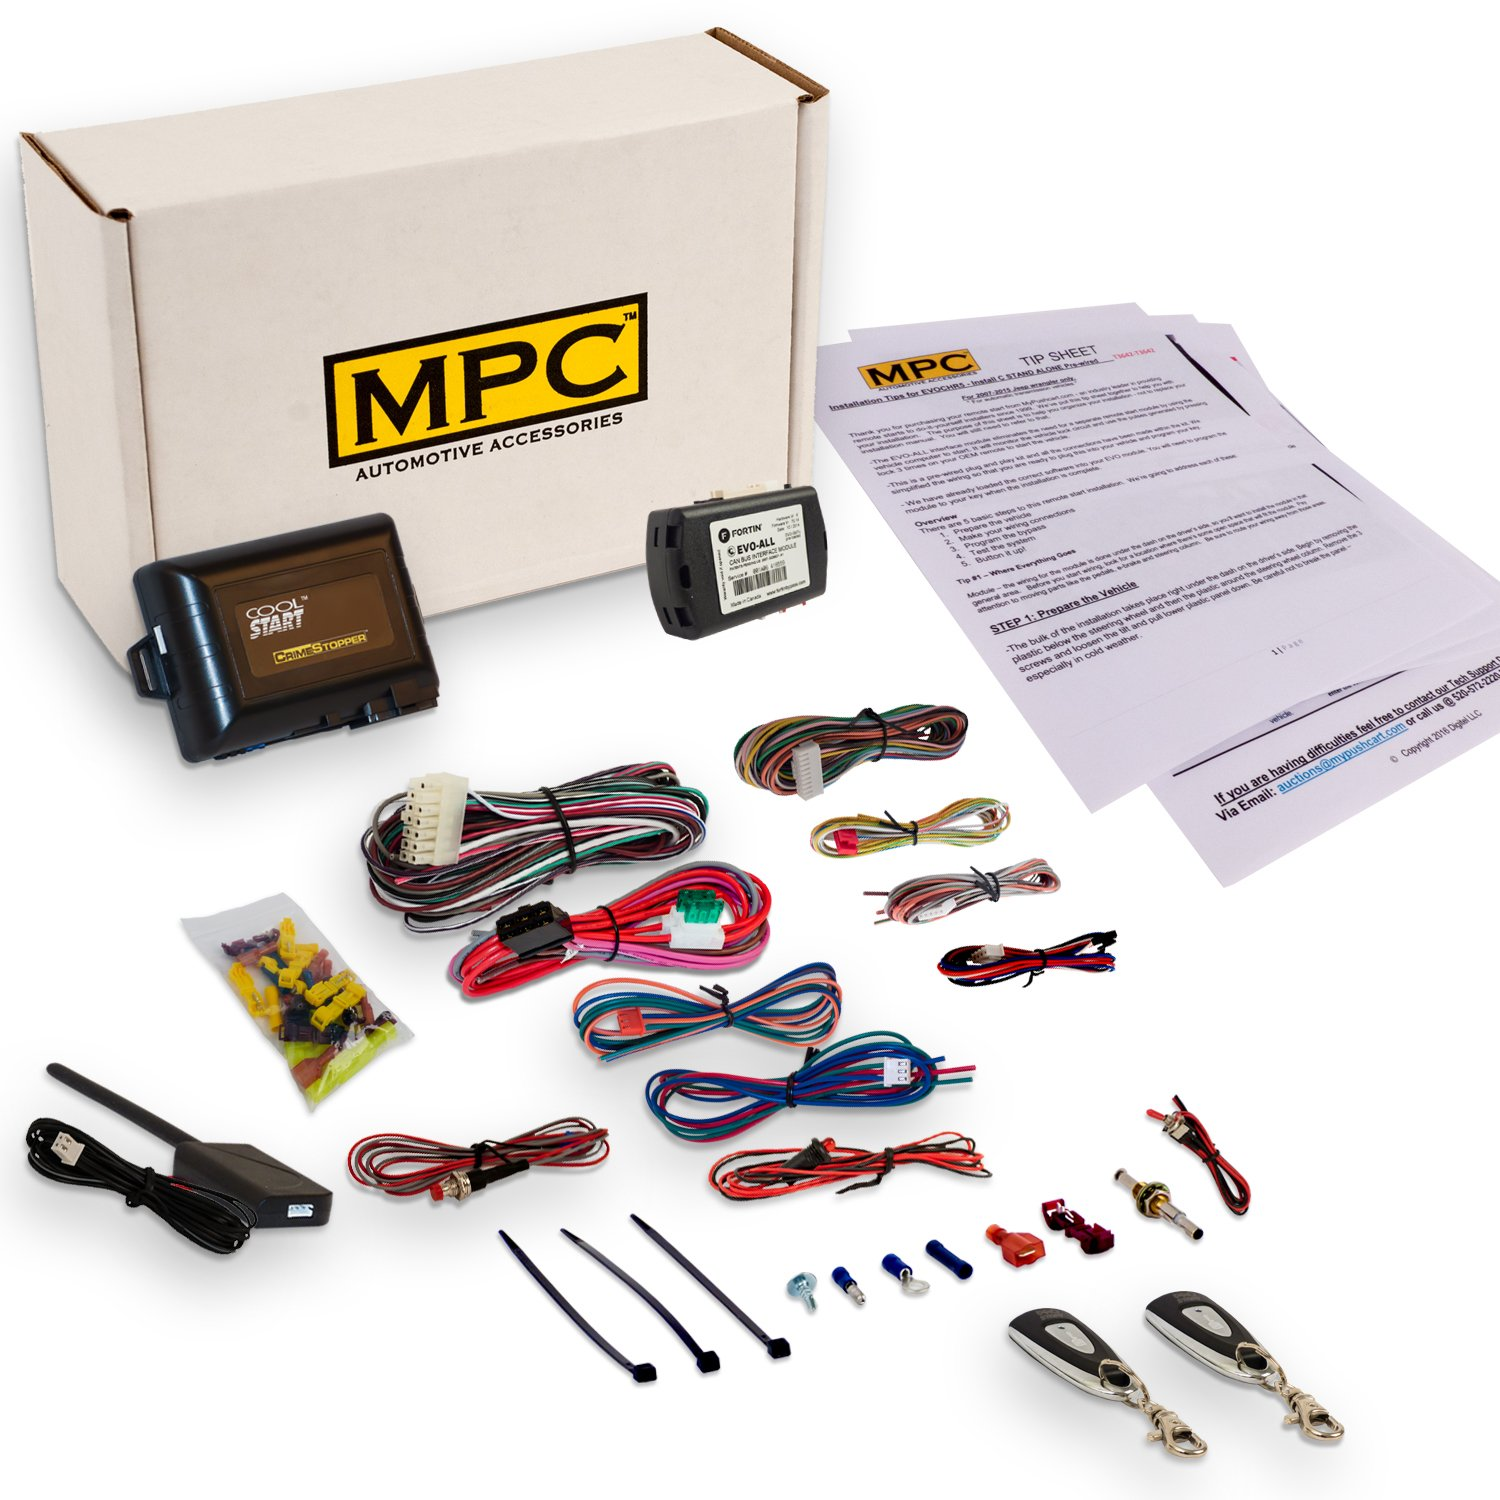 Complete 1 Button Remote Start Kit Fits Nissan Altima 2004 Quest Transmission Wiring Diagram 2005 2006 Maxima 2008 Murano 2003 2007 Automotive